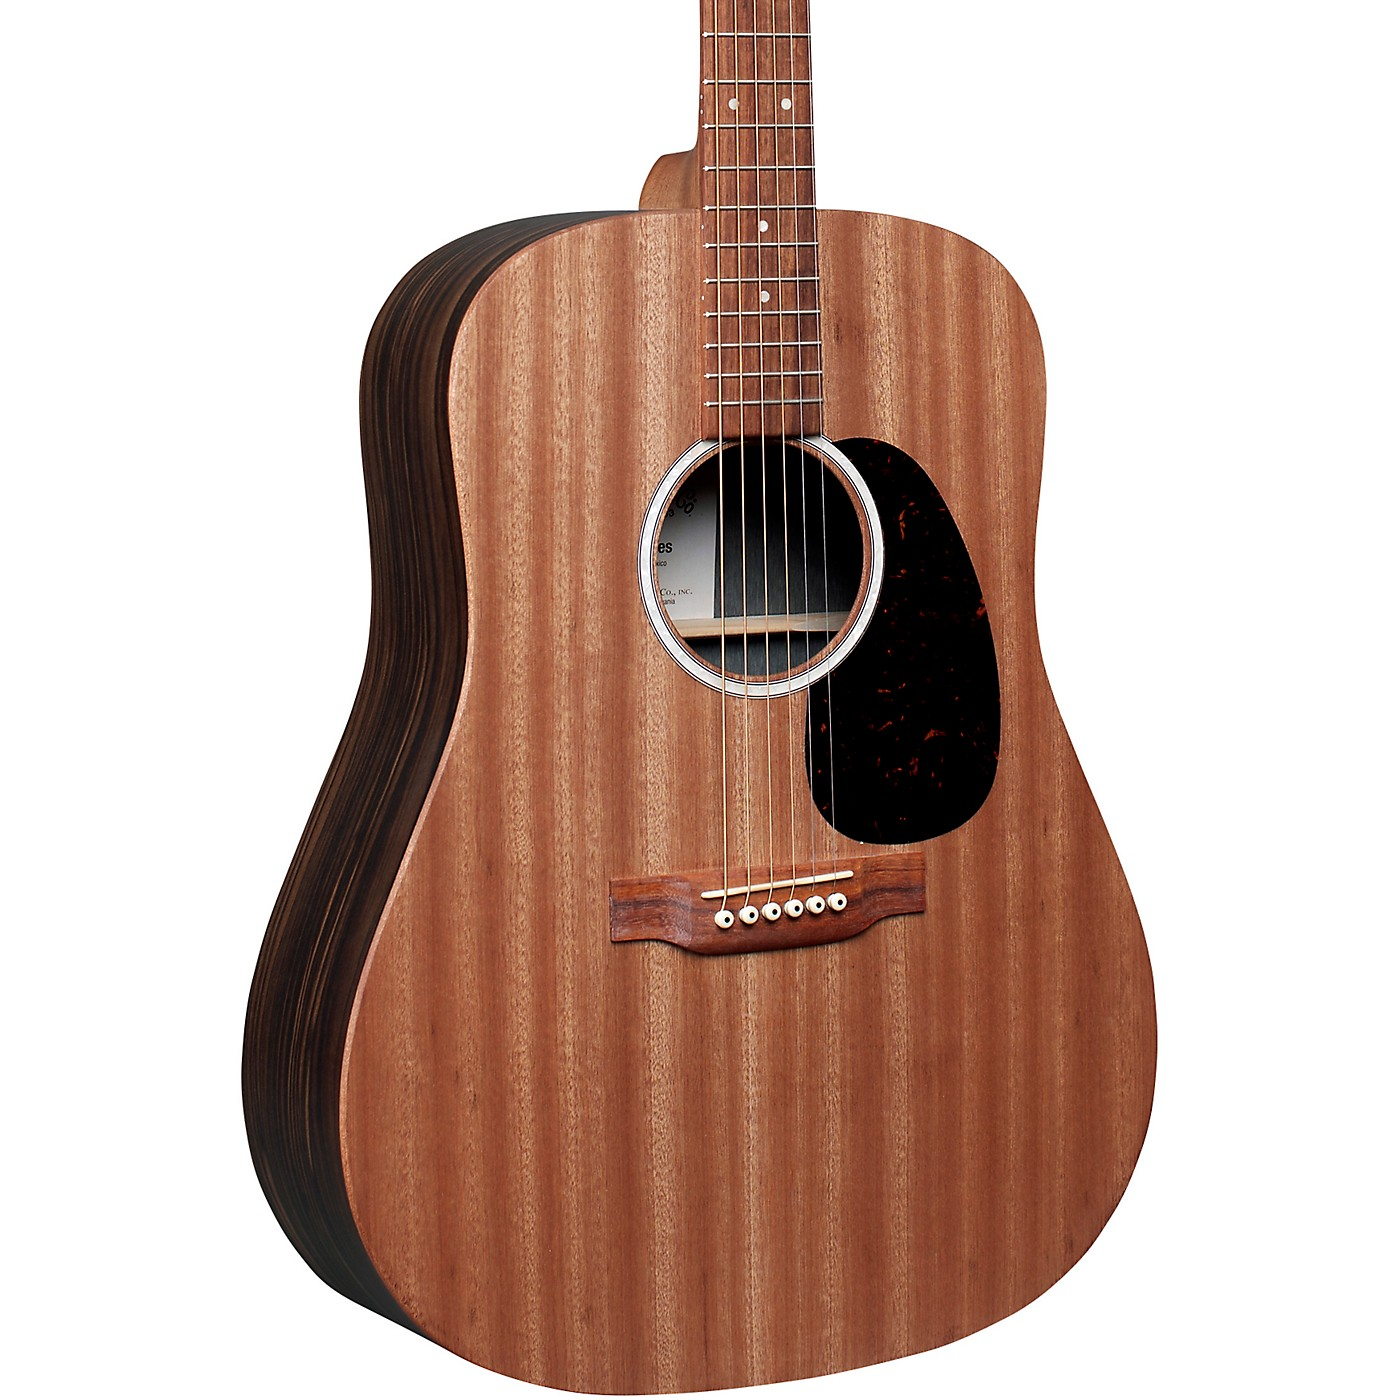 Martin D-X2E Sapele Macassar Ebony Dreadnought Acoustic-Electric Guitar thumbnail